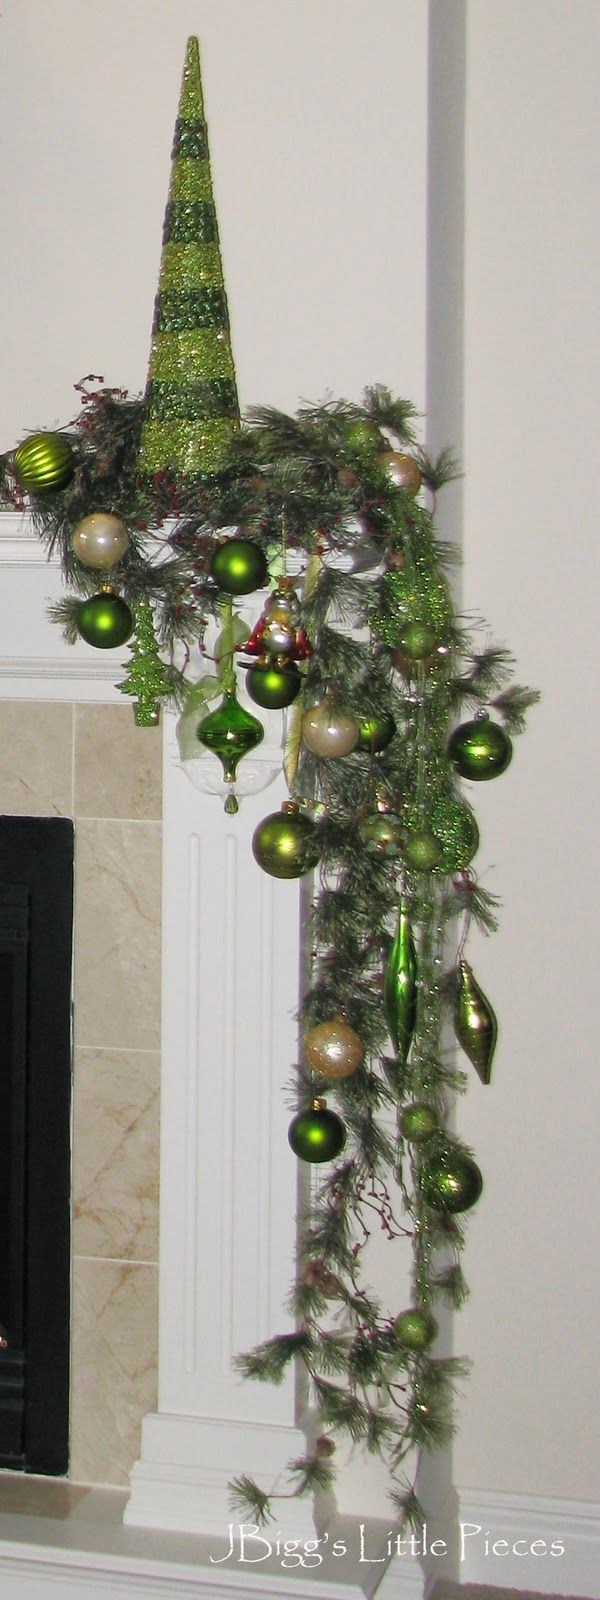 My mantel is done and chartreuse is the main color. The cones are individual pieces of glittered and spangle pieces in two shades of green. ...